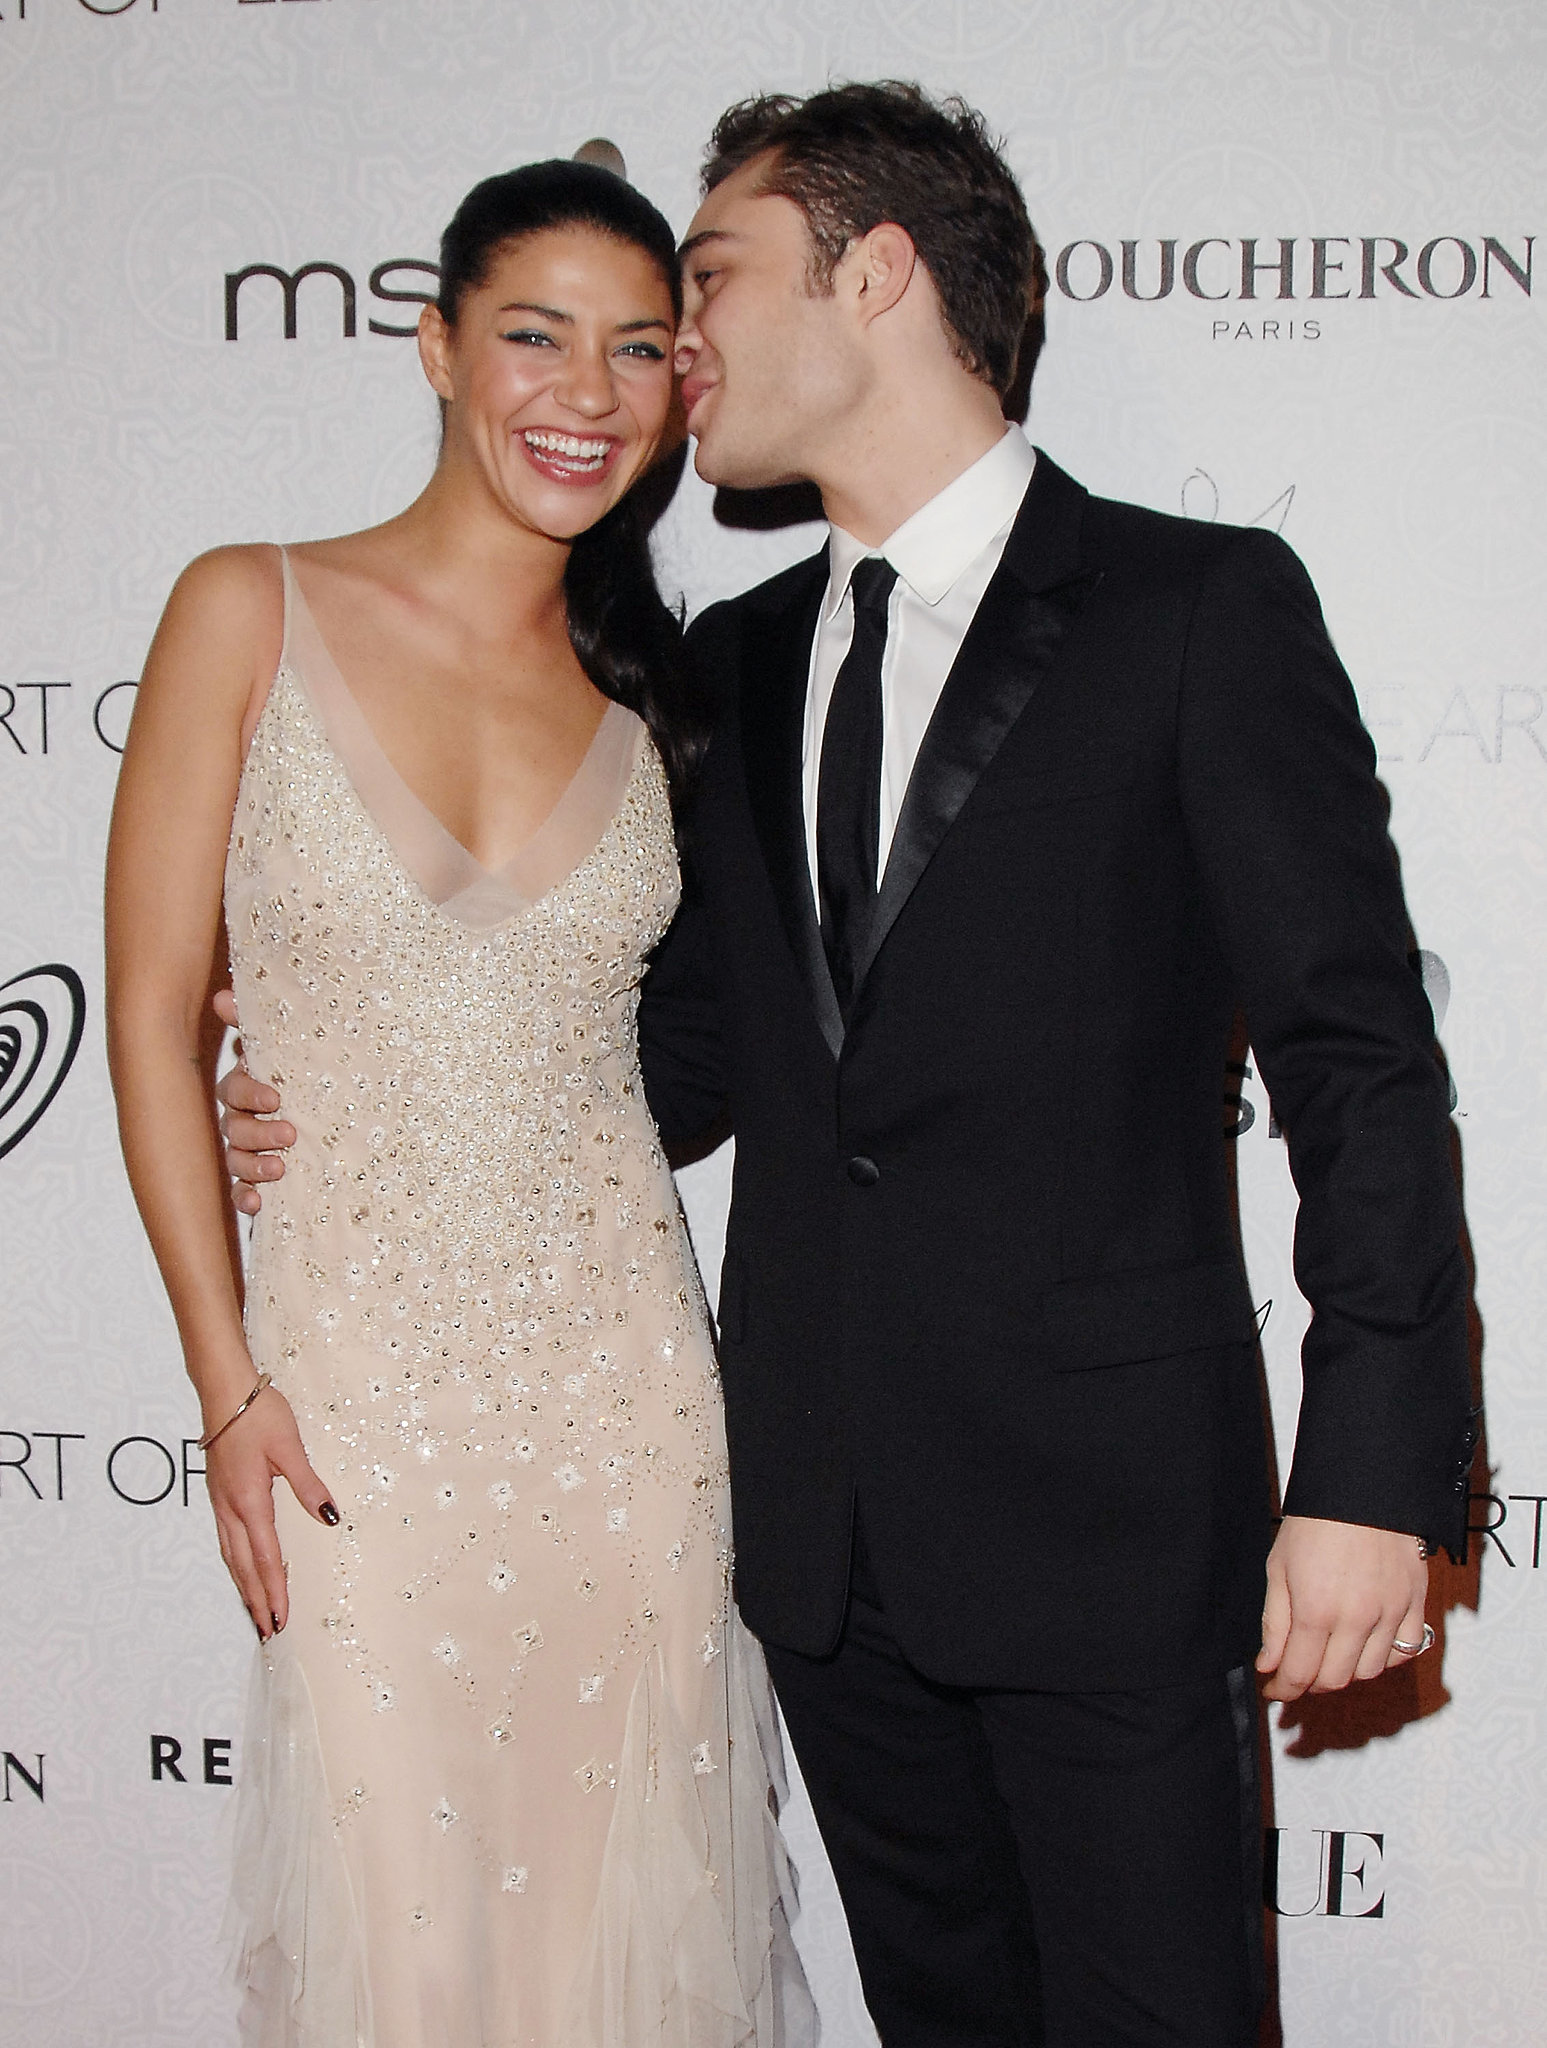 jessica szohr and ed westwick 25 cw costars who hooked